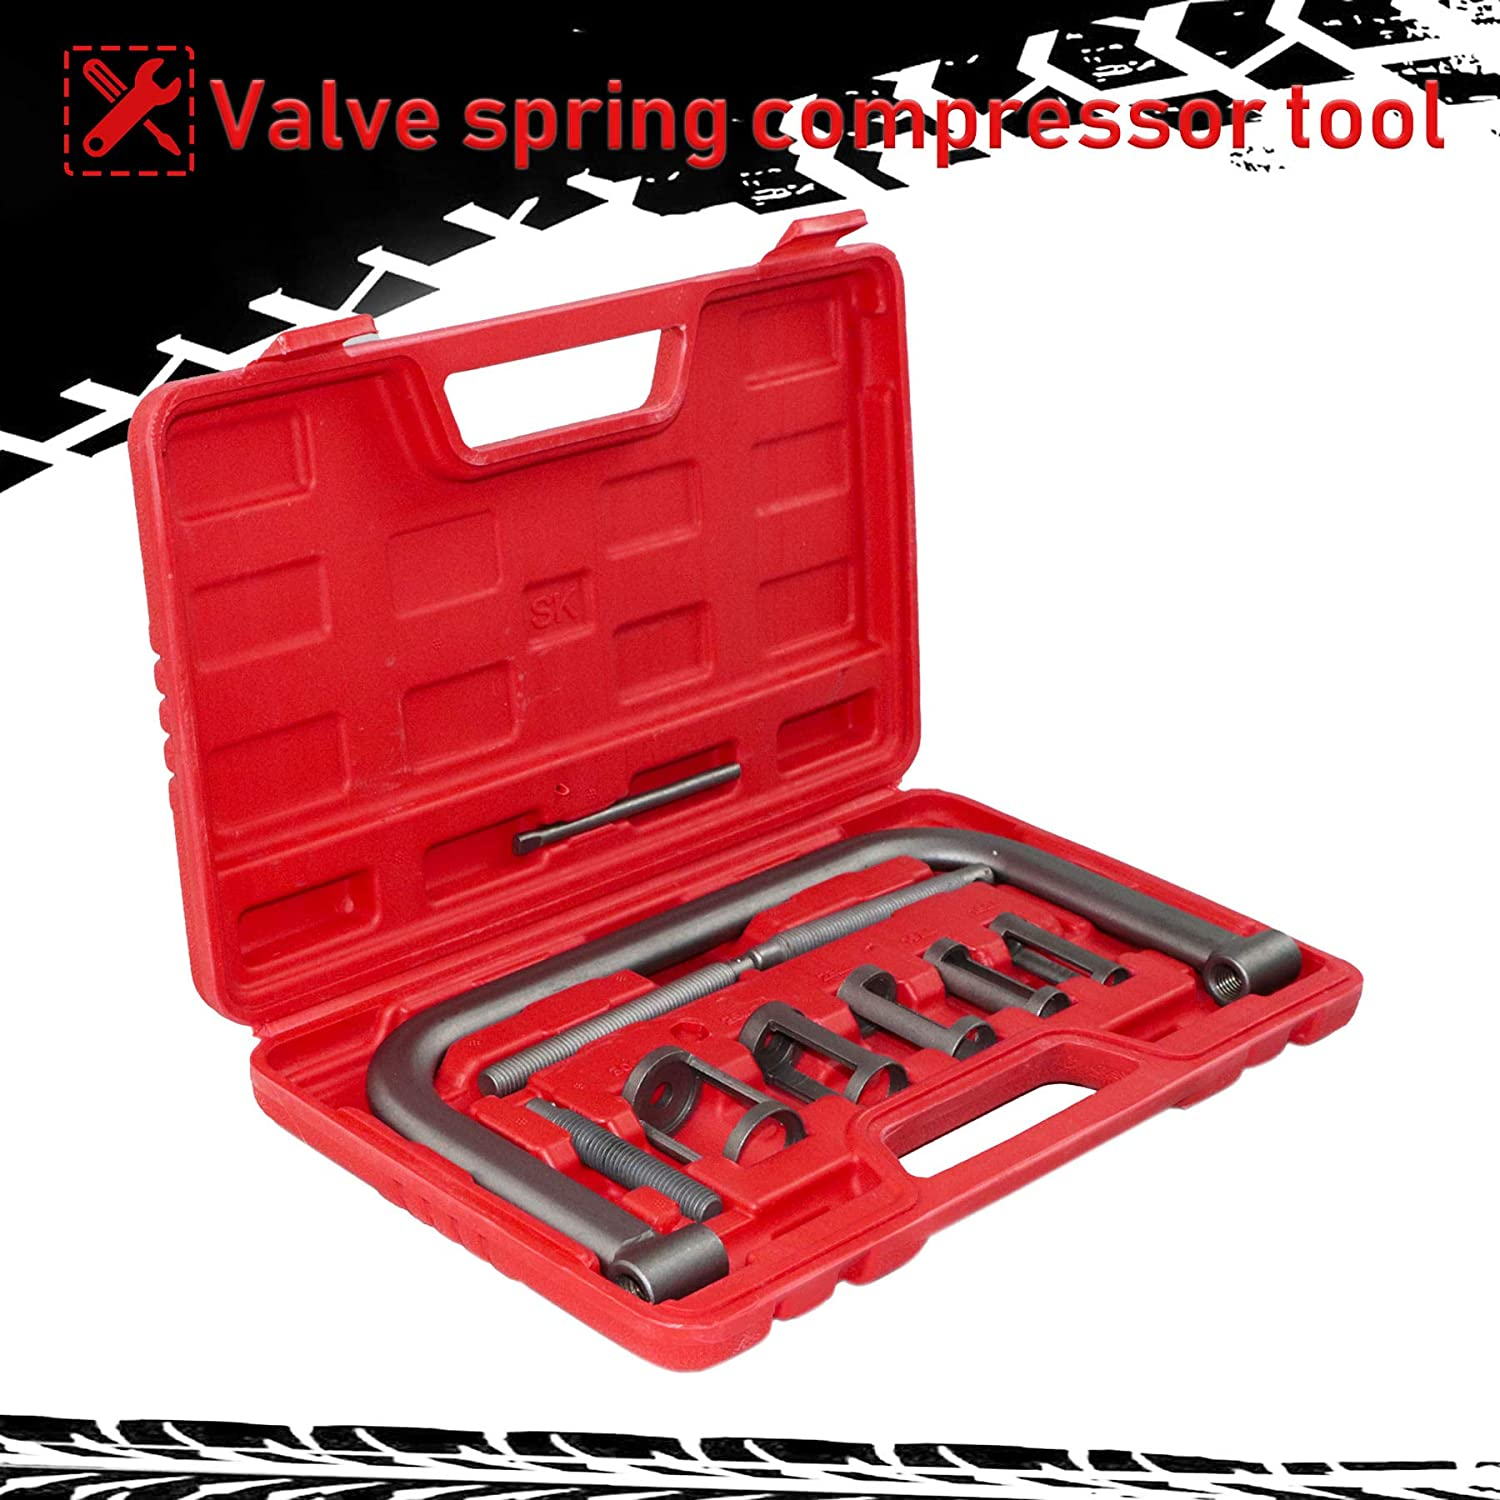 Youxmoto 10pcs Valve Spring Compressor C Clamp Tool Set Auto Compression Clamp Tool Service Kit for Motorcycle ATV Small Engine Vehicle Equipment Car